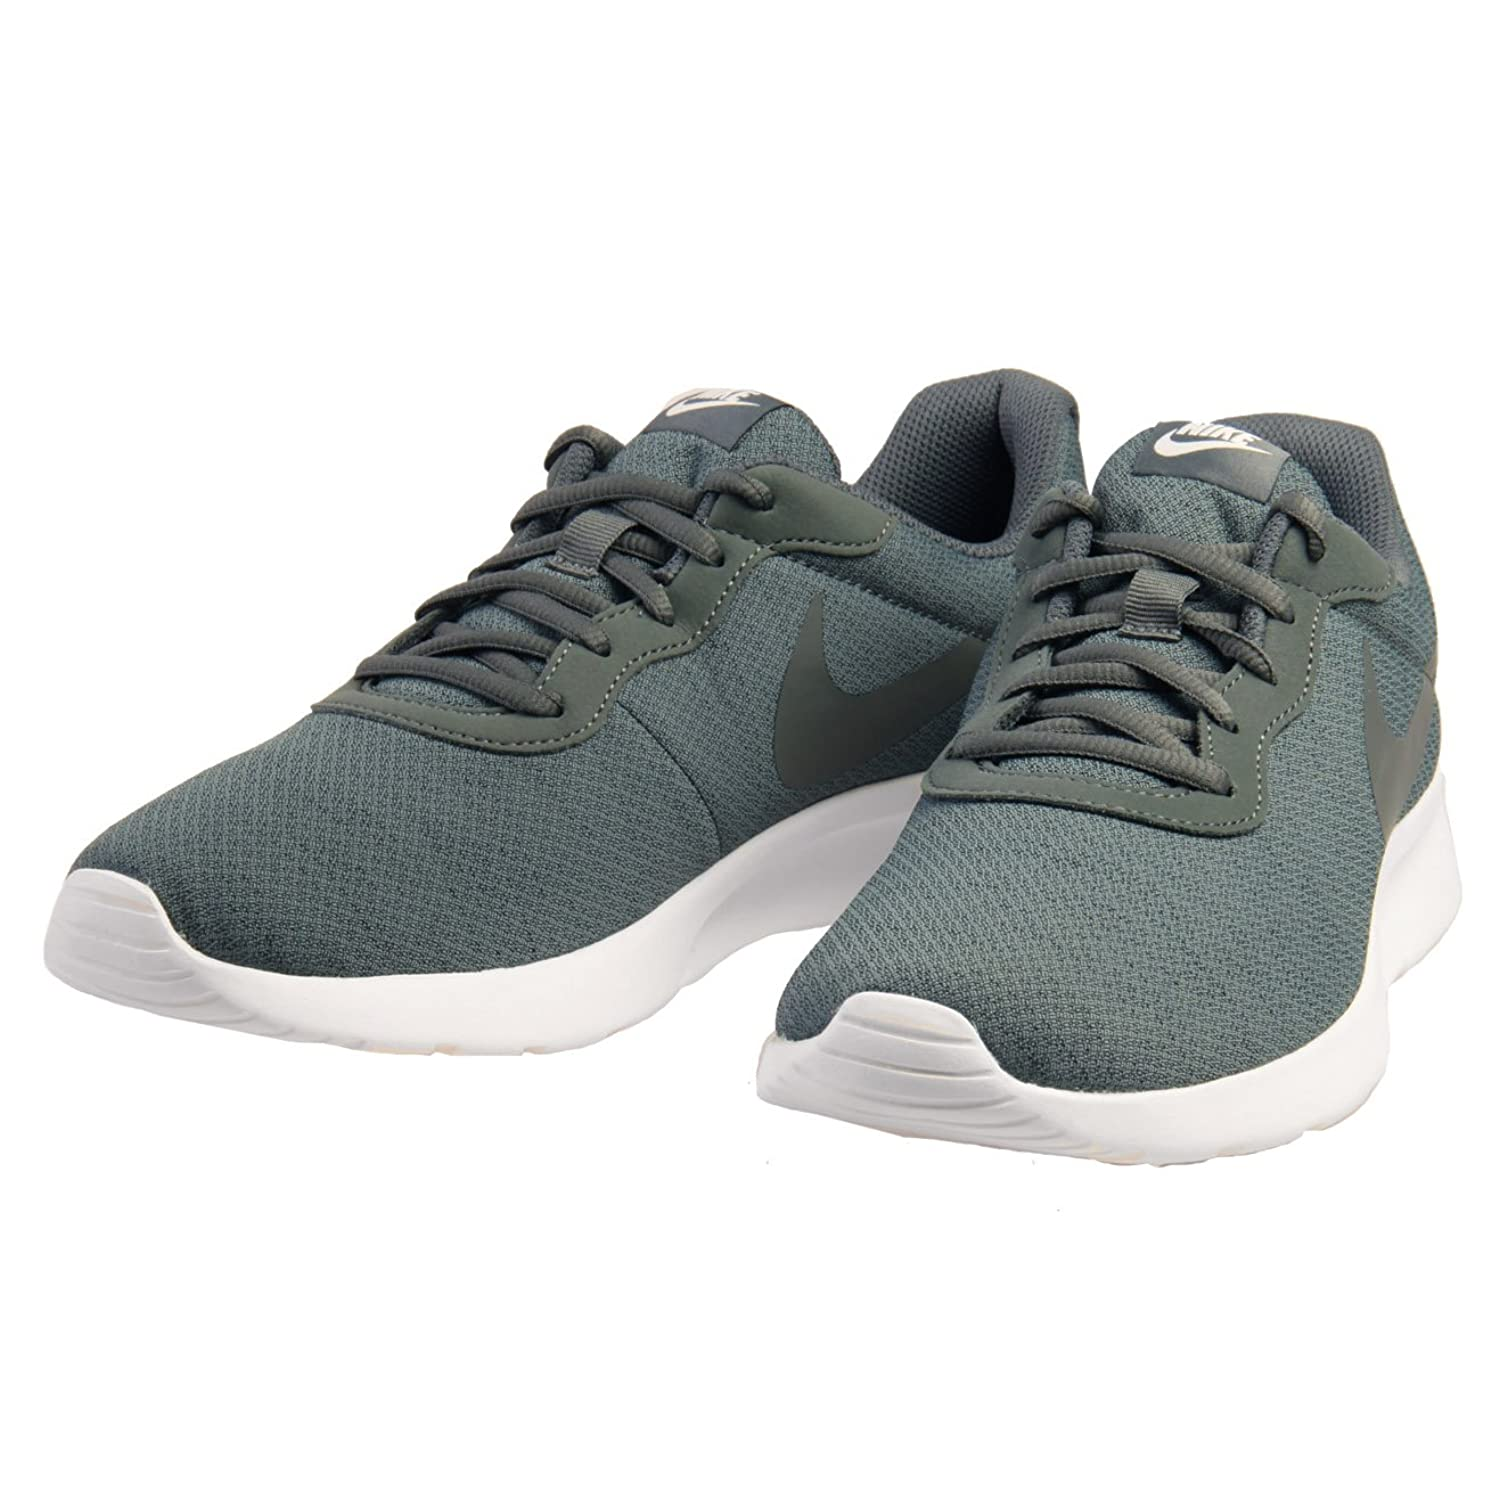 the best attitude 23152 3e4ef Chaussures Nike Nike Chaussures Homme 812654006 Tanjun 45 Exclusif Explorer  95abb8